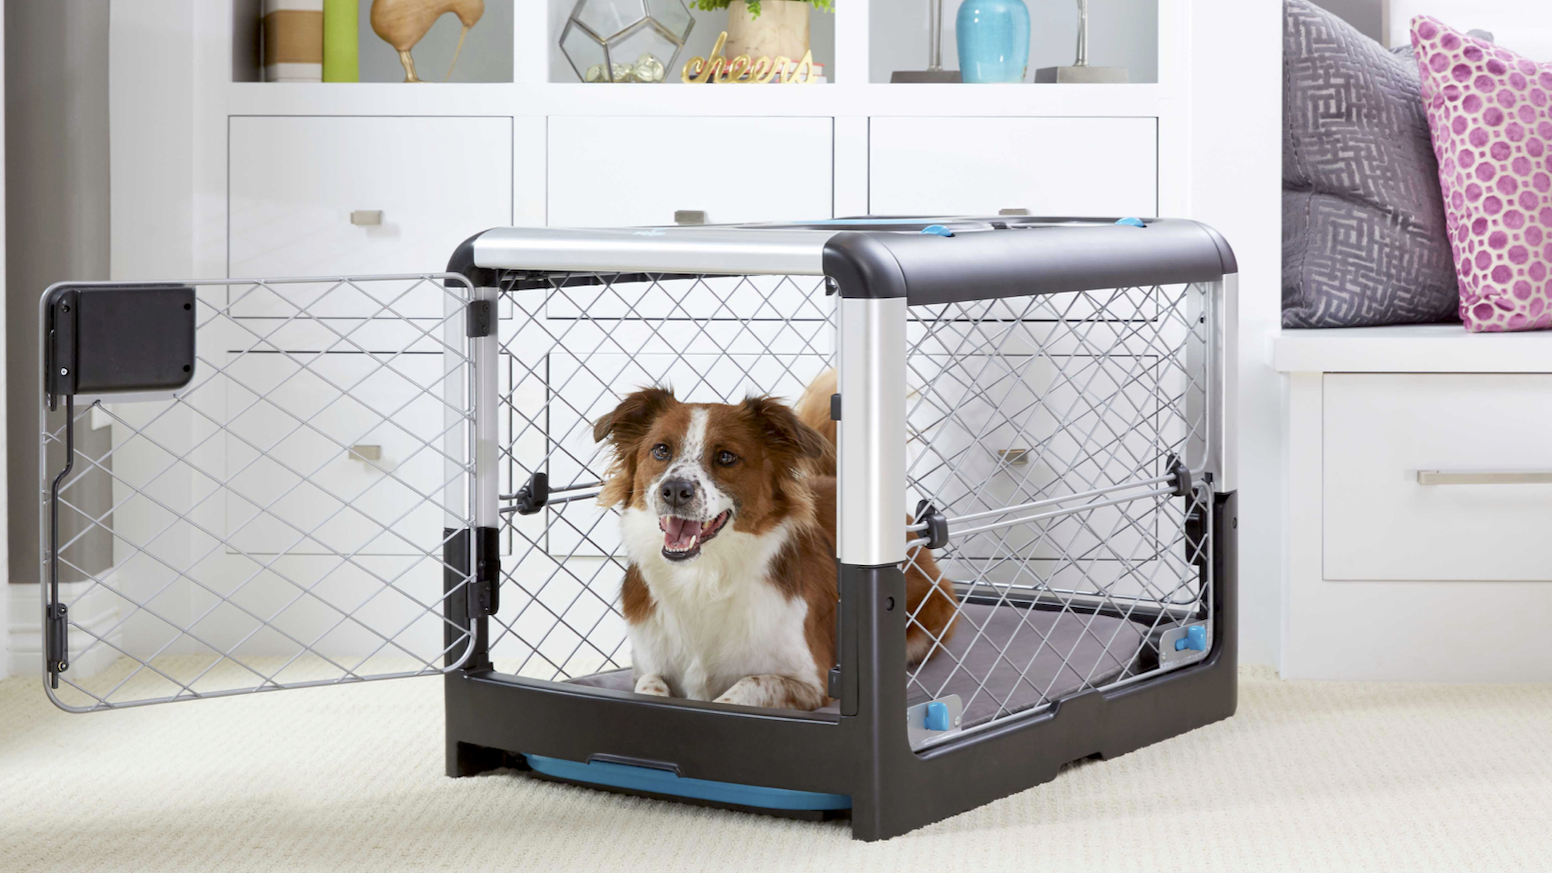 The Revol Dog Crate is ergonomic, simple to use, stylish & safer than other wire crates. Combined with Snooz, it's the best crate ever.